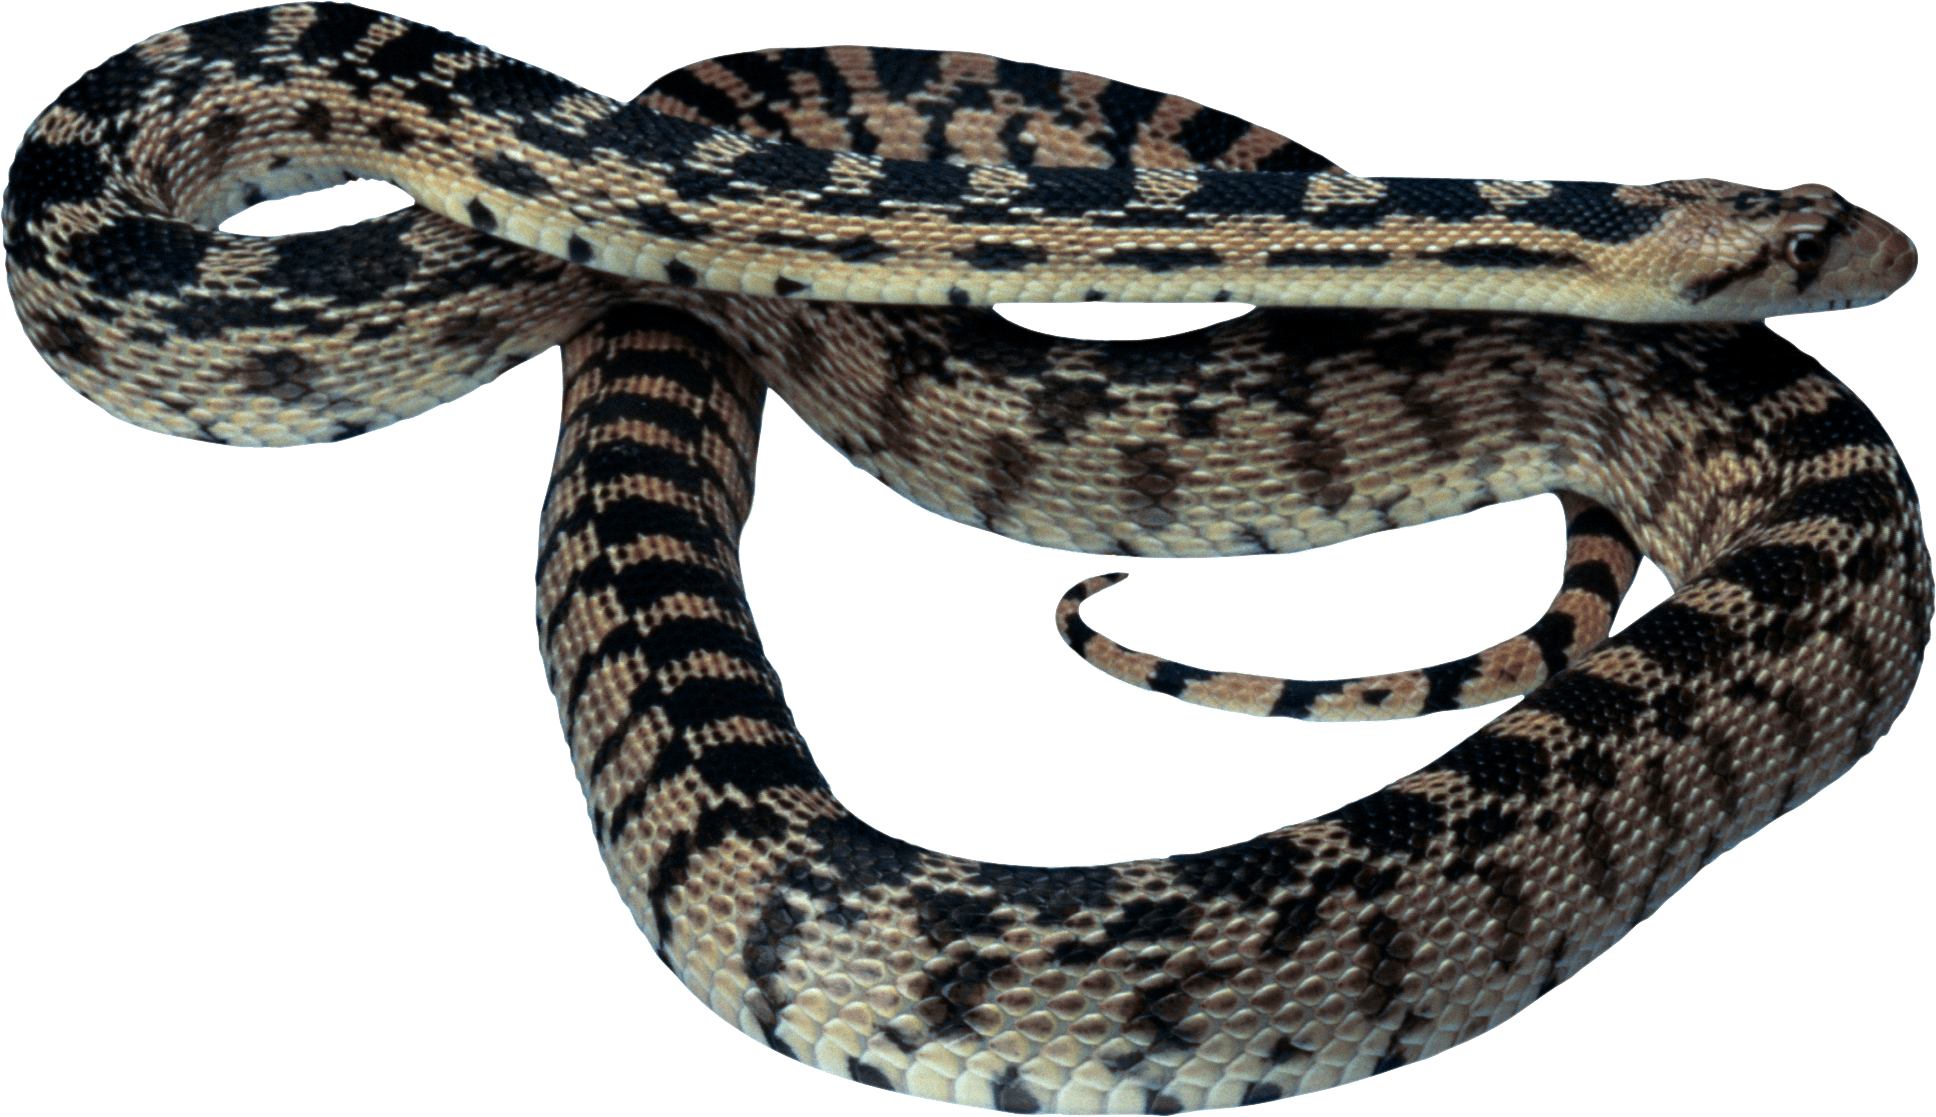 Snake Png Image Picture Download  PNG Image